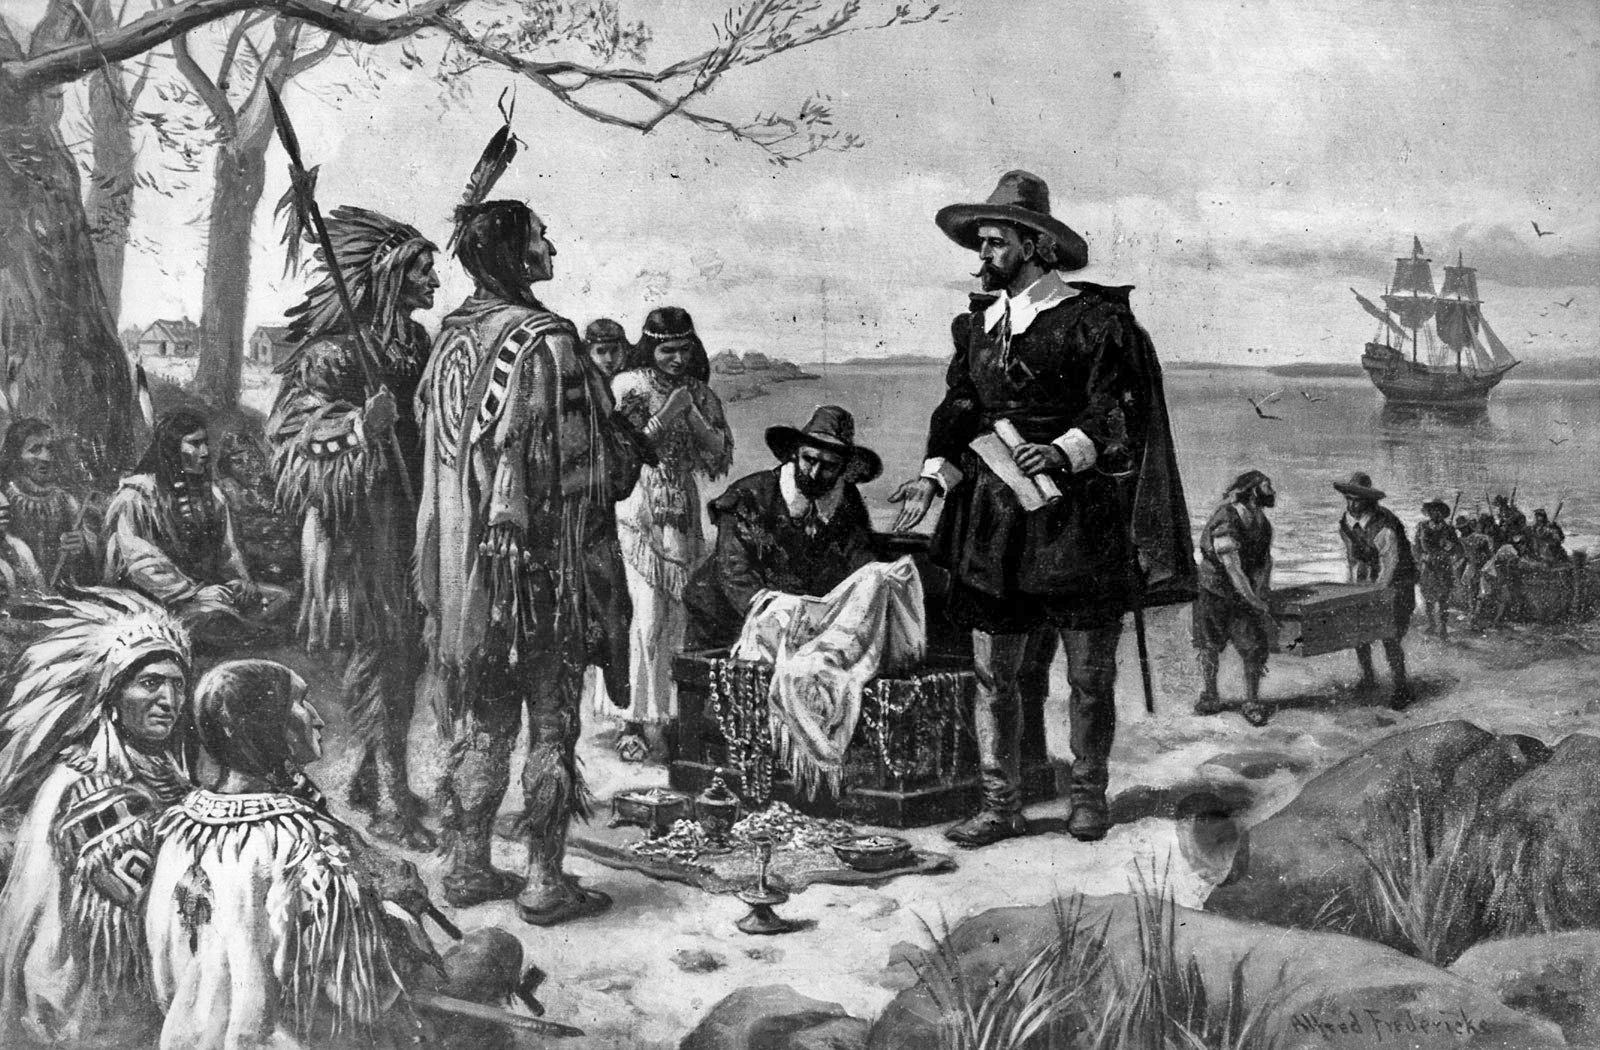 the history of the lenni lenape In the opening of chapter ii — the indians, in the the history of camden county, new jersey the writer voices a common belief of the time that the number of native americans on the eastern seaboard was less than the early settlers and writers believed.